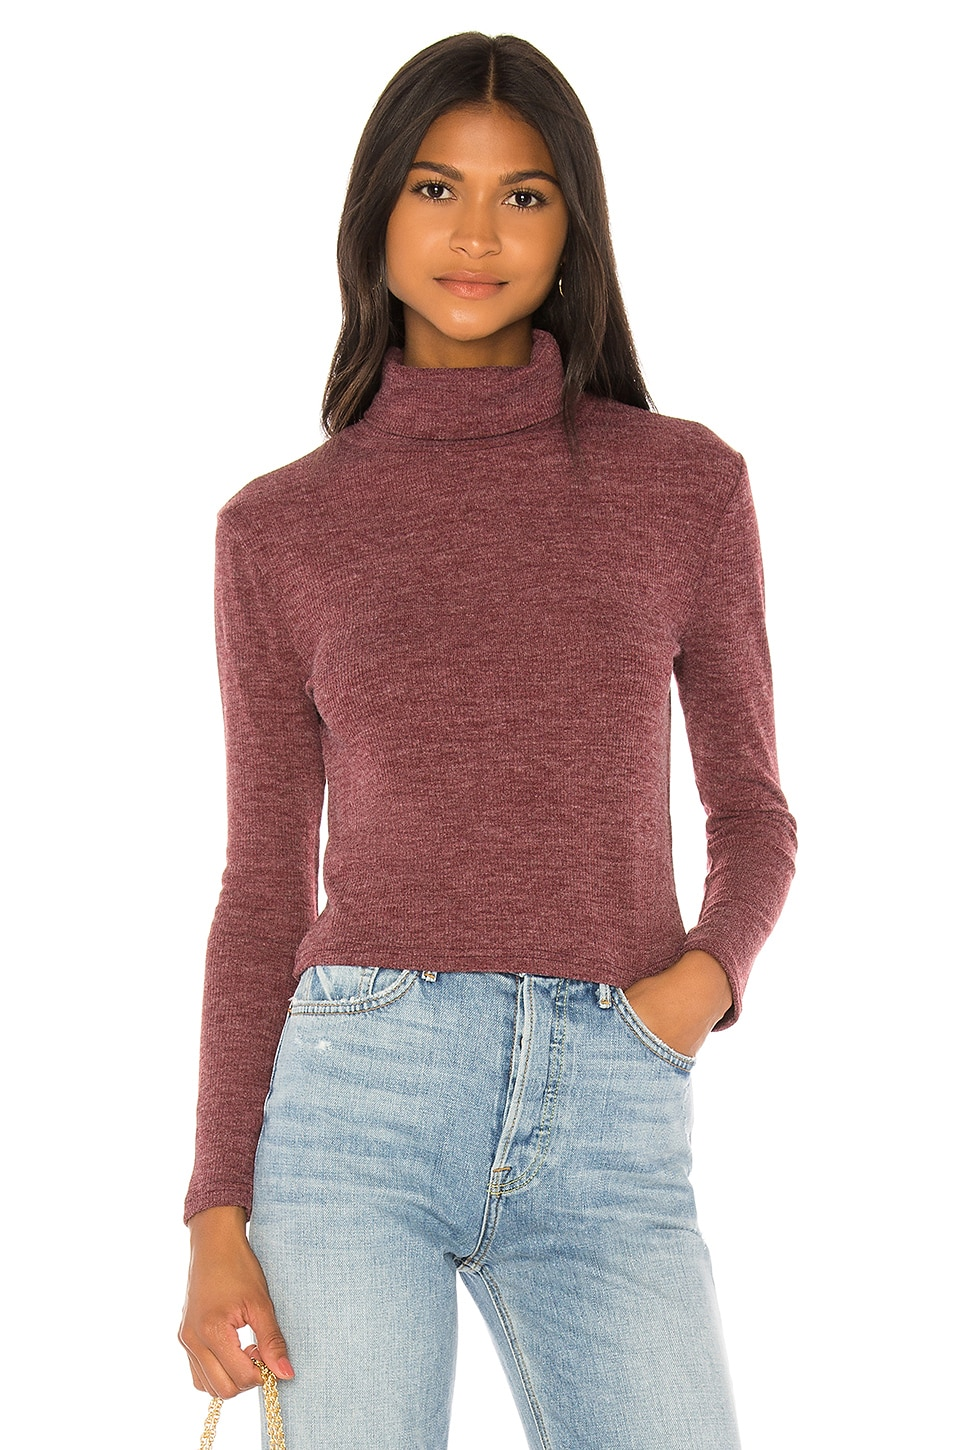 Privacy Please Kit Sweater in Burgundy